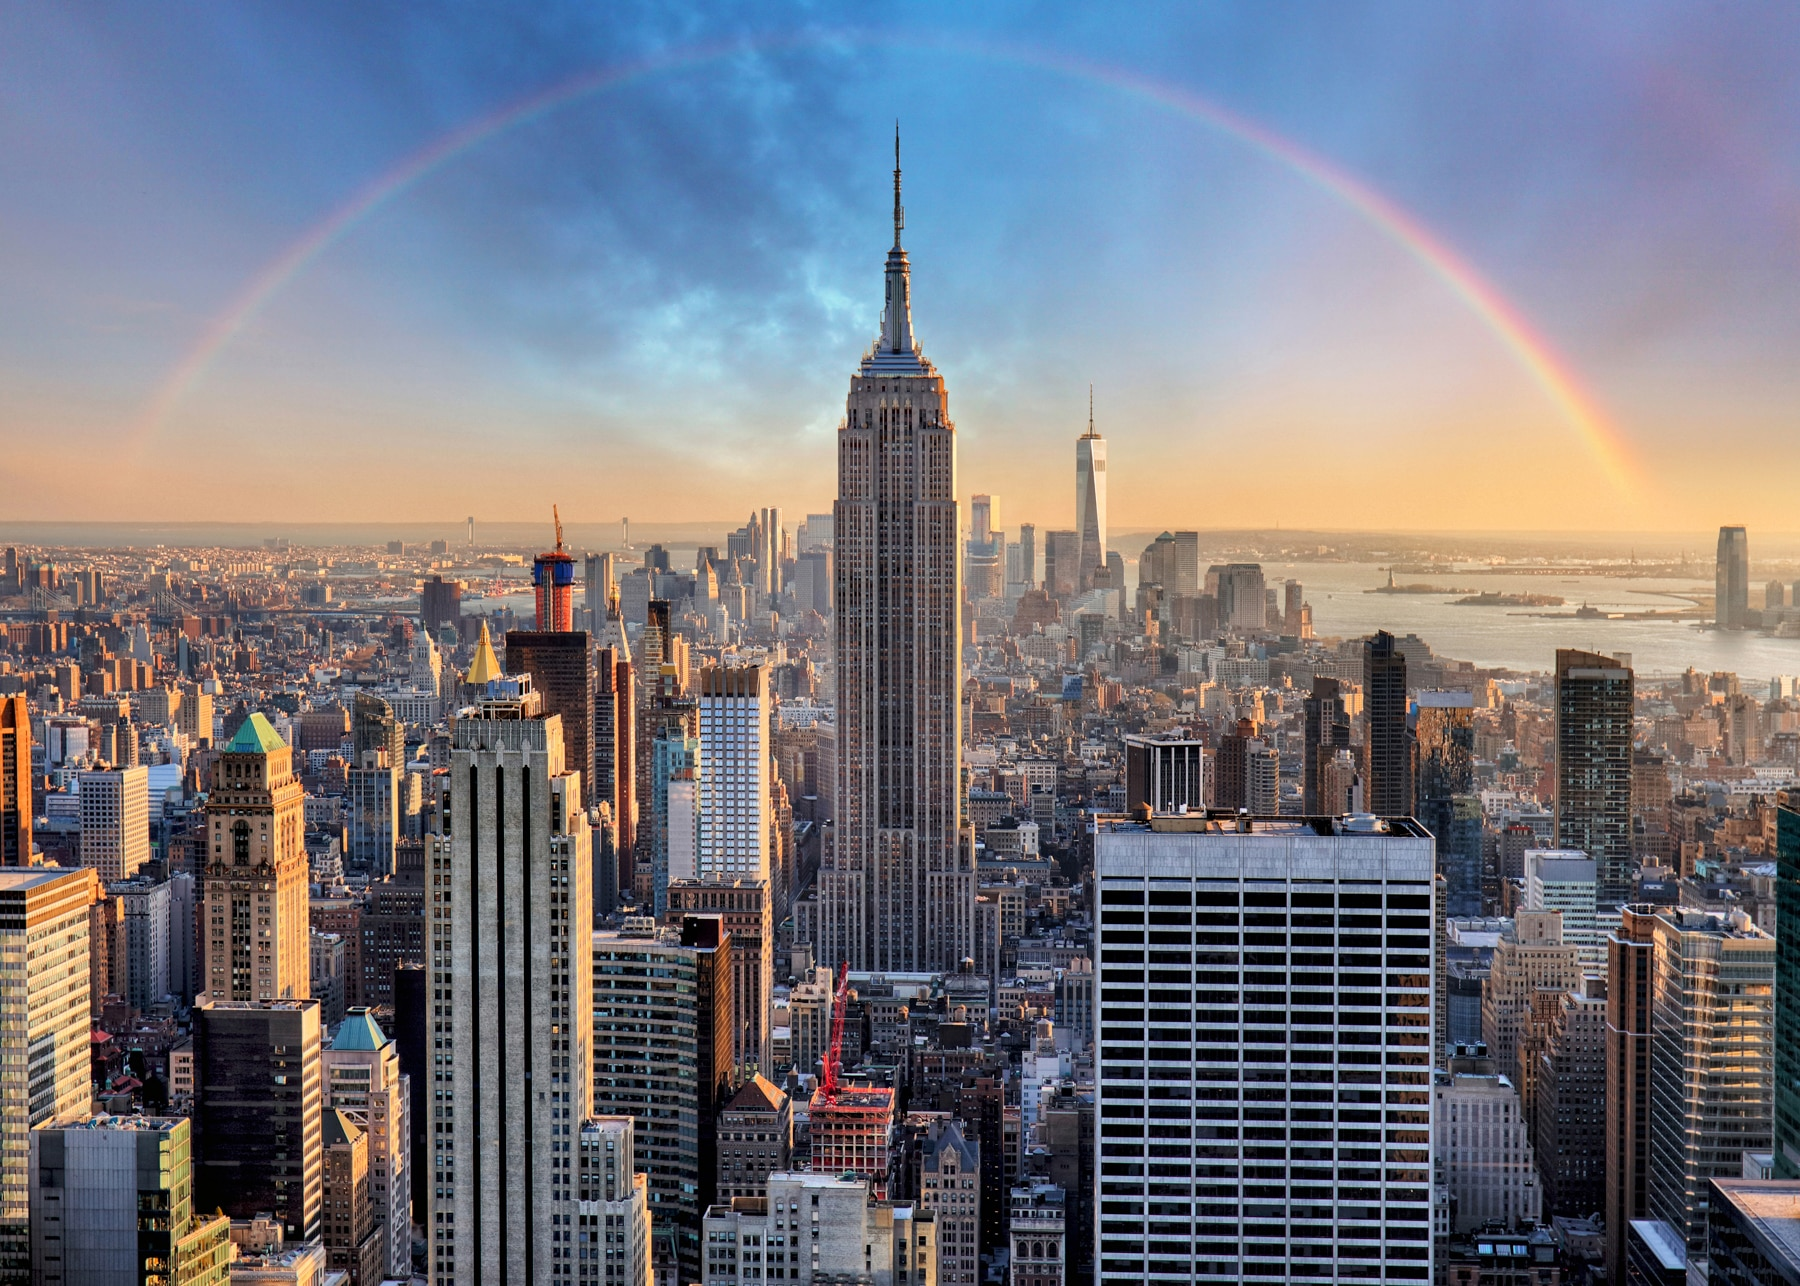 City skyline with skyscrapers and rainbow (Shutterstock)